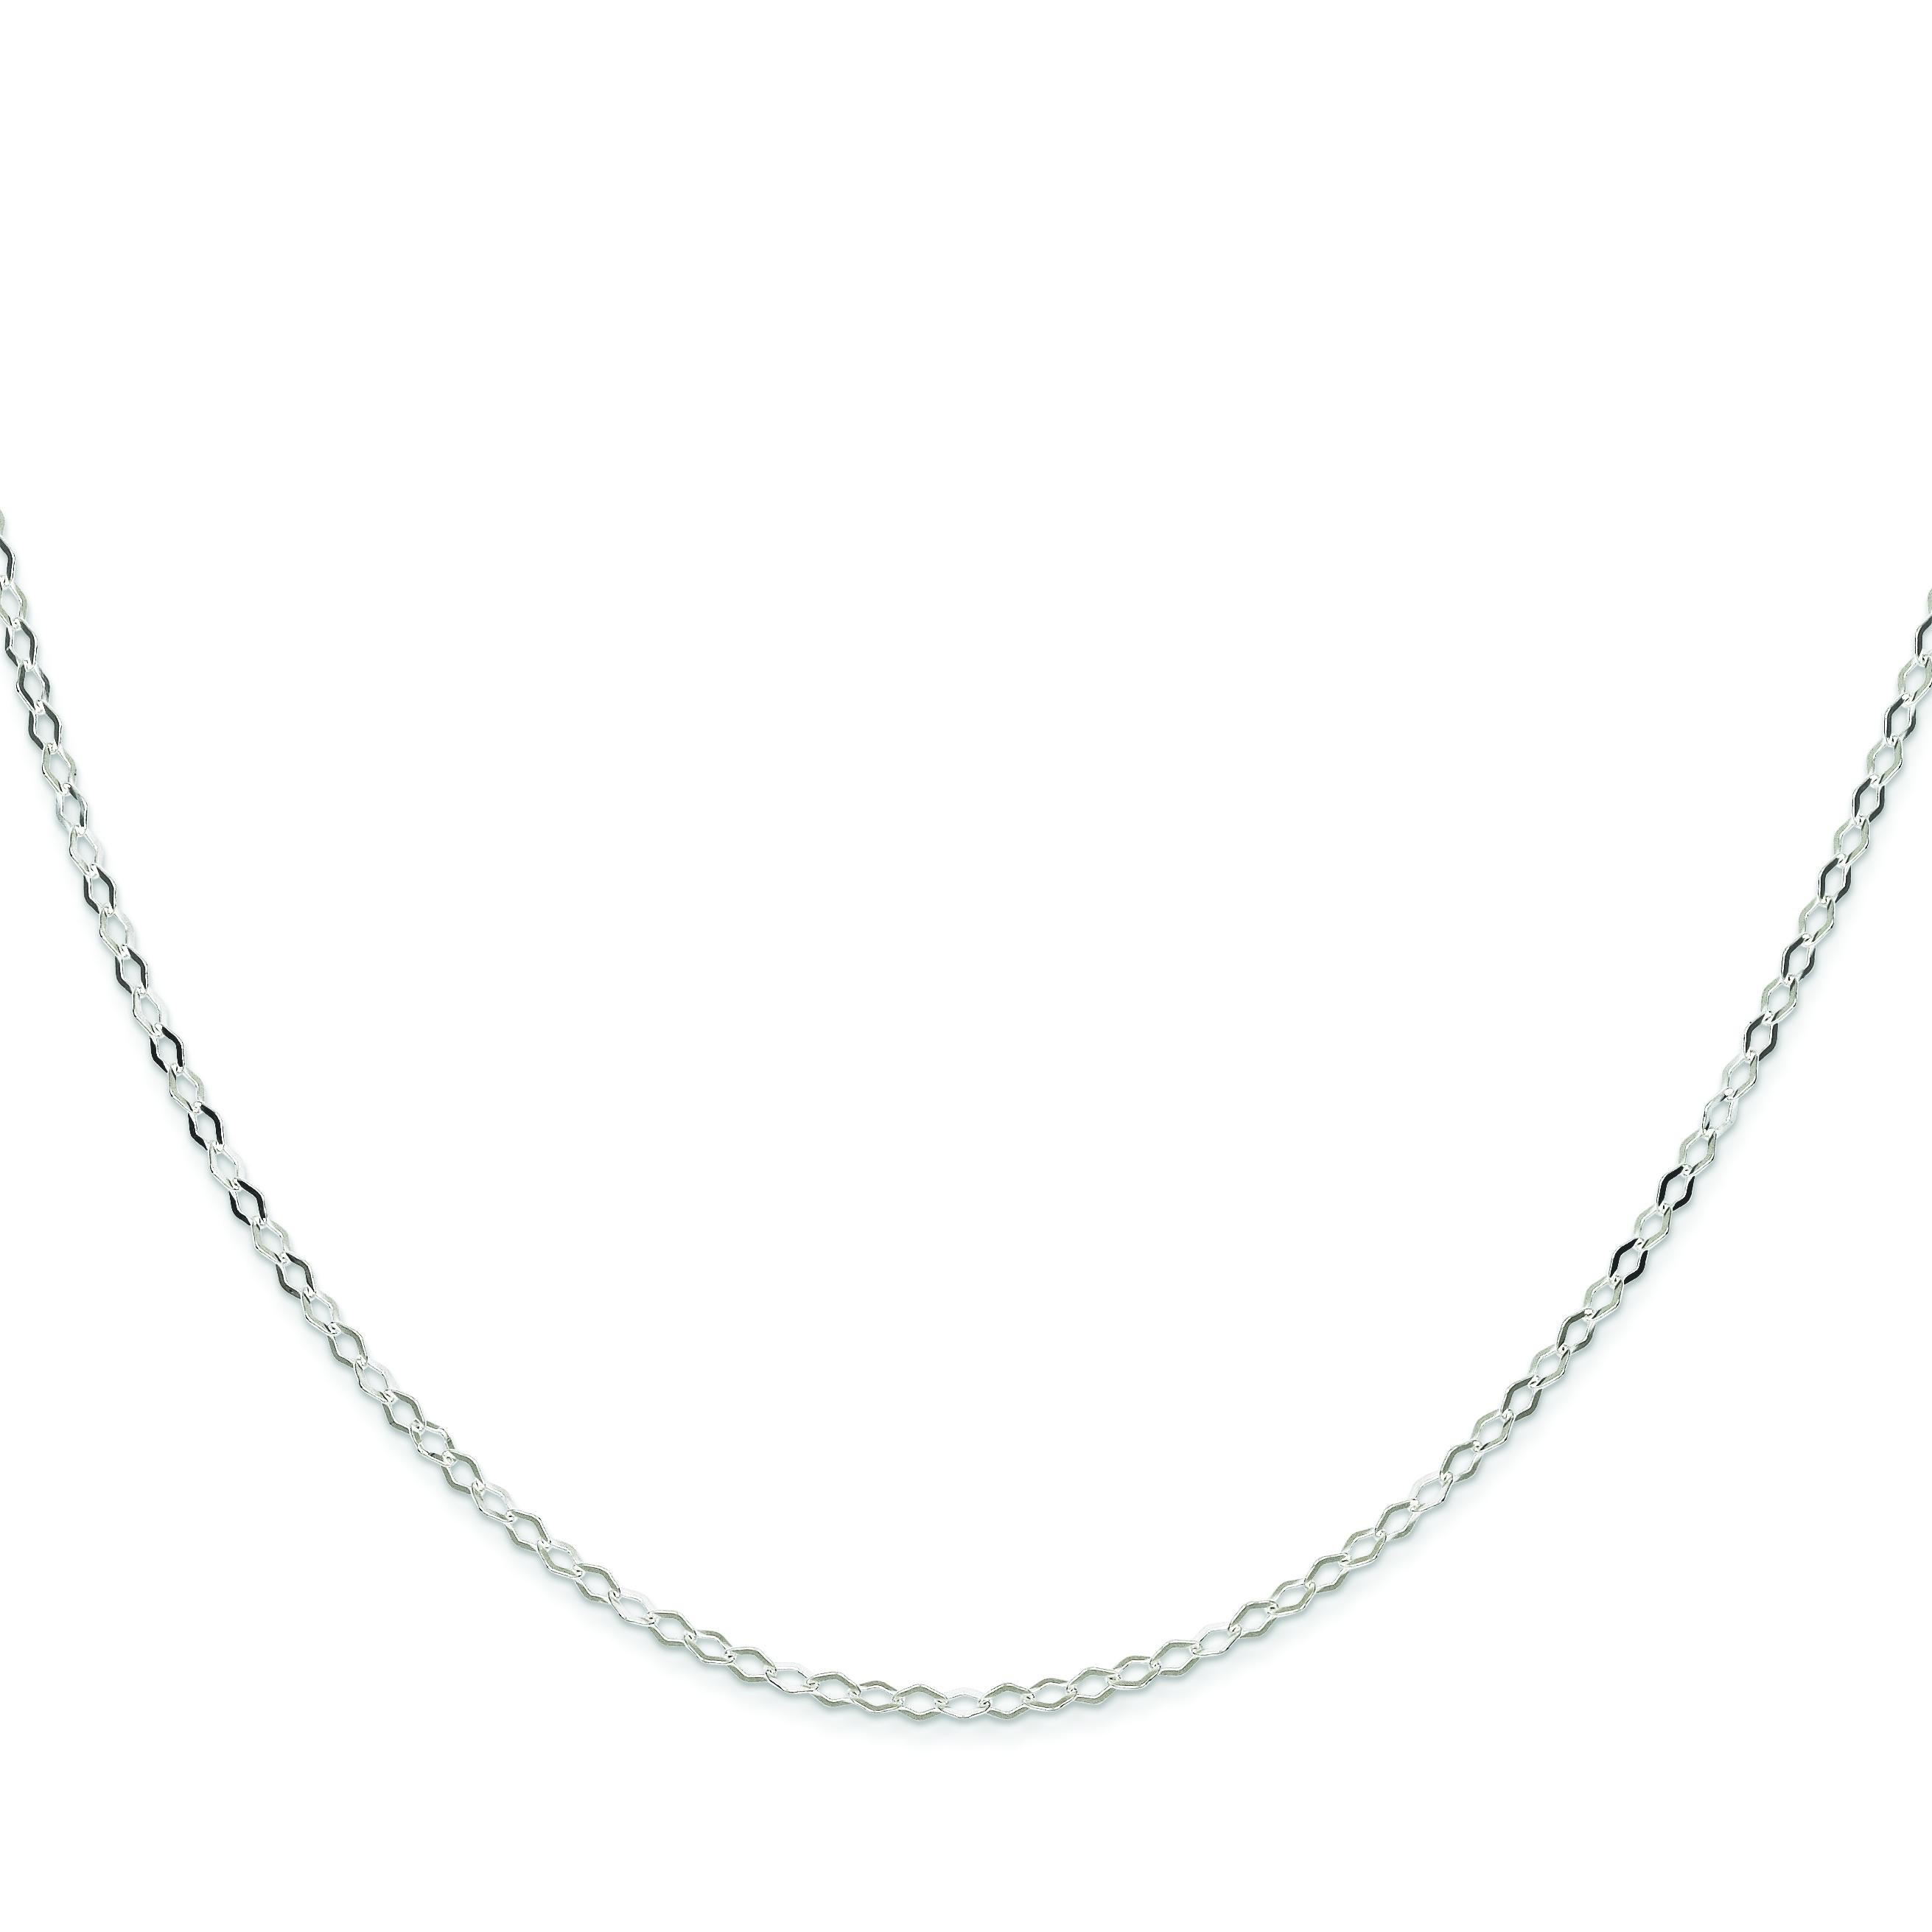 Sterling Silver 8 inch 2.25 mm Open Link Chain Bracelet